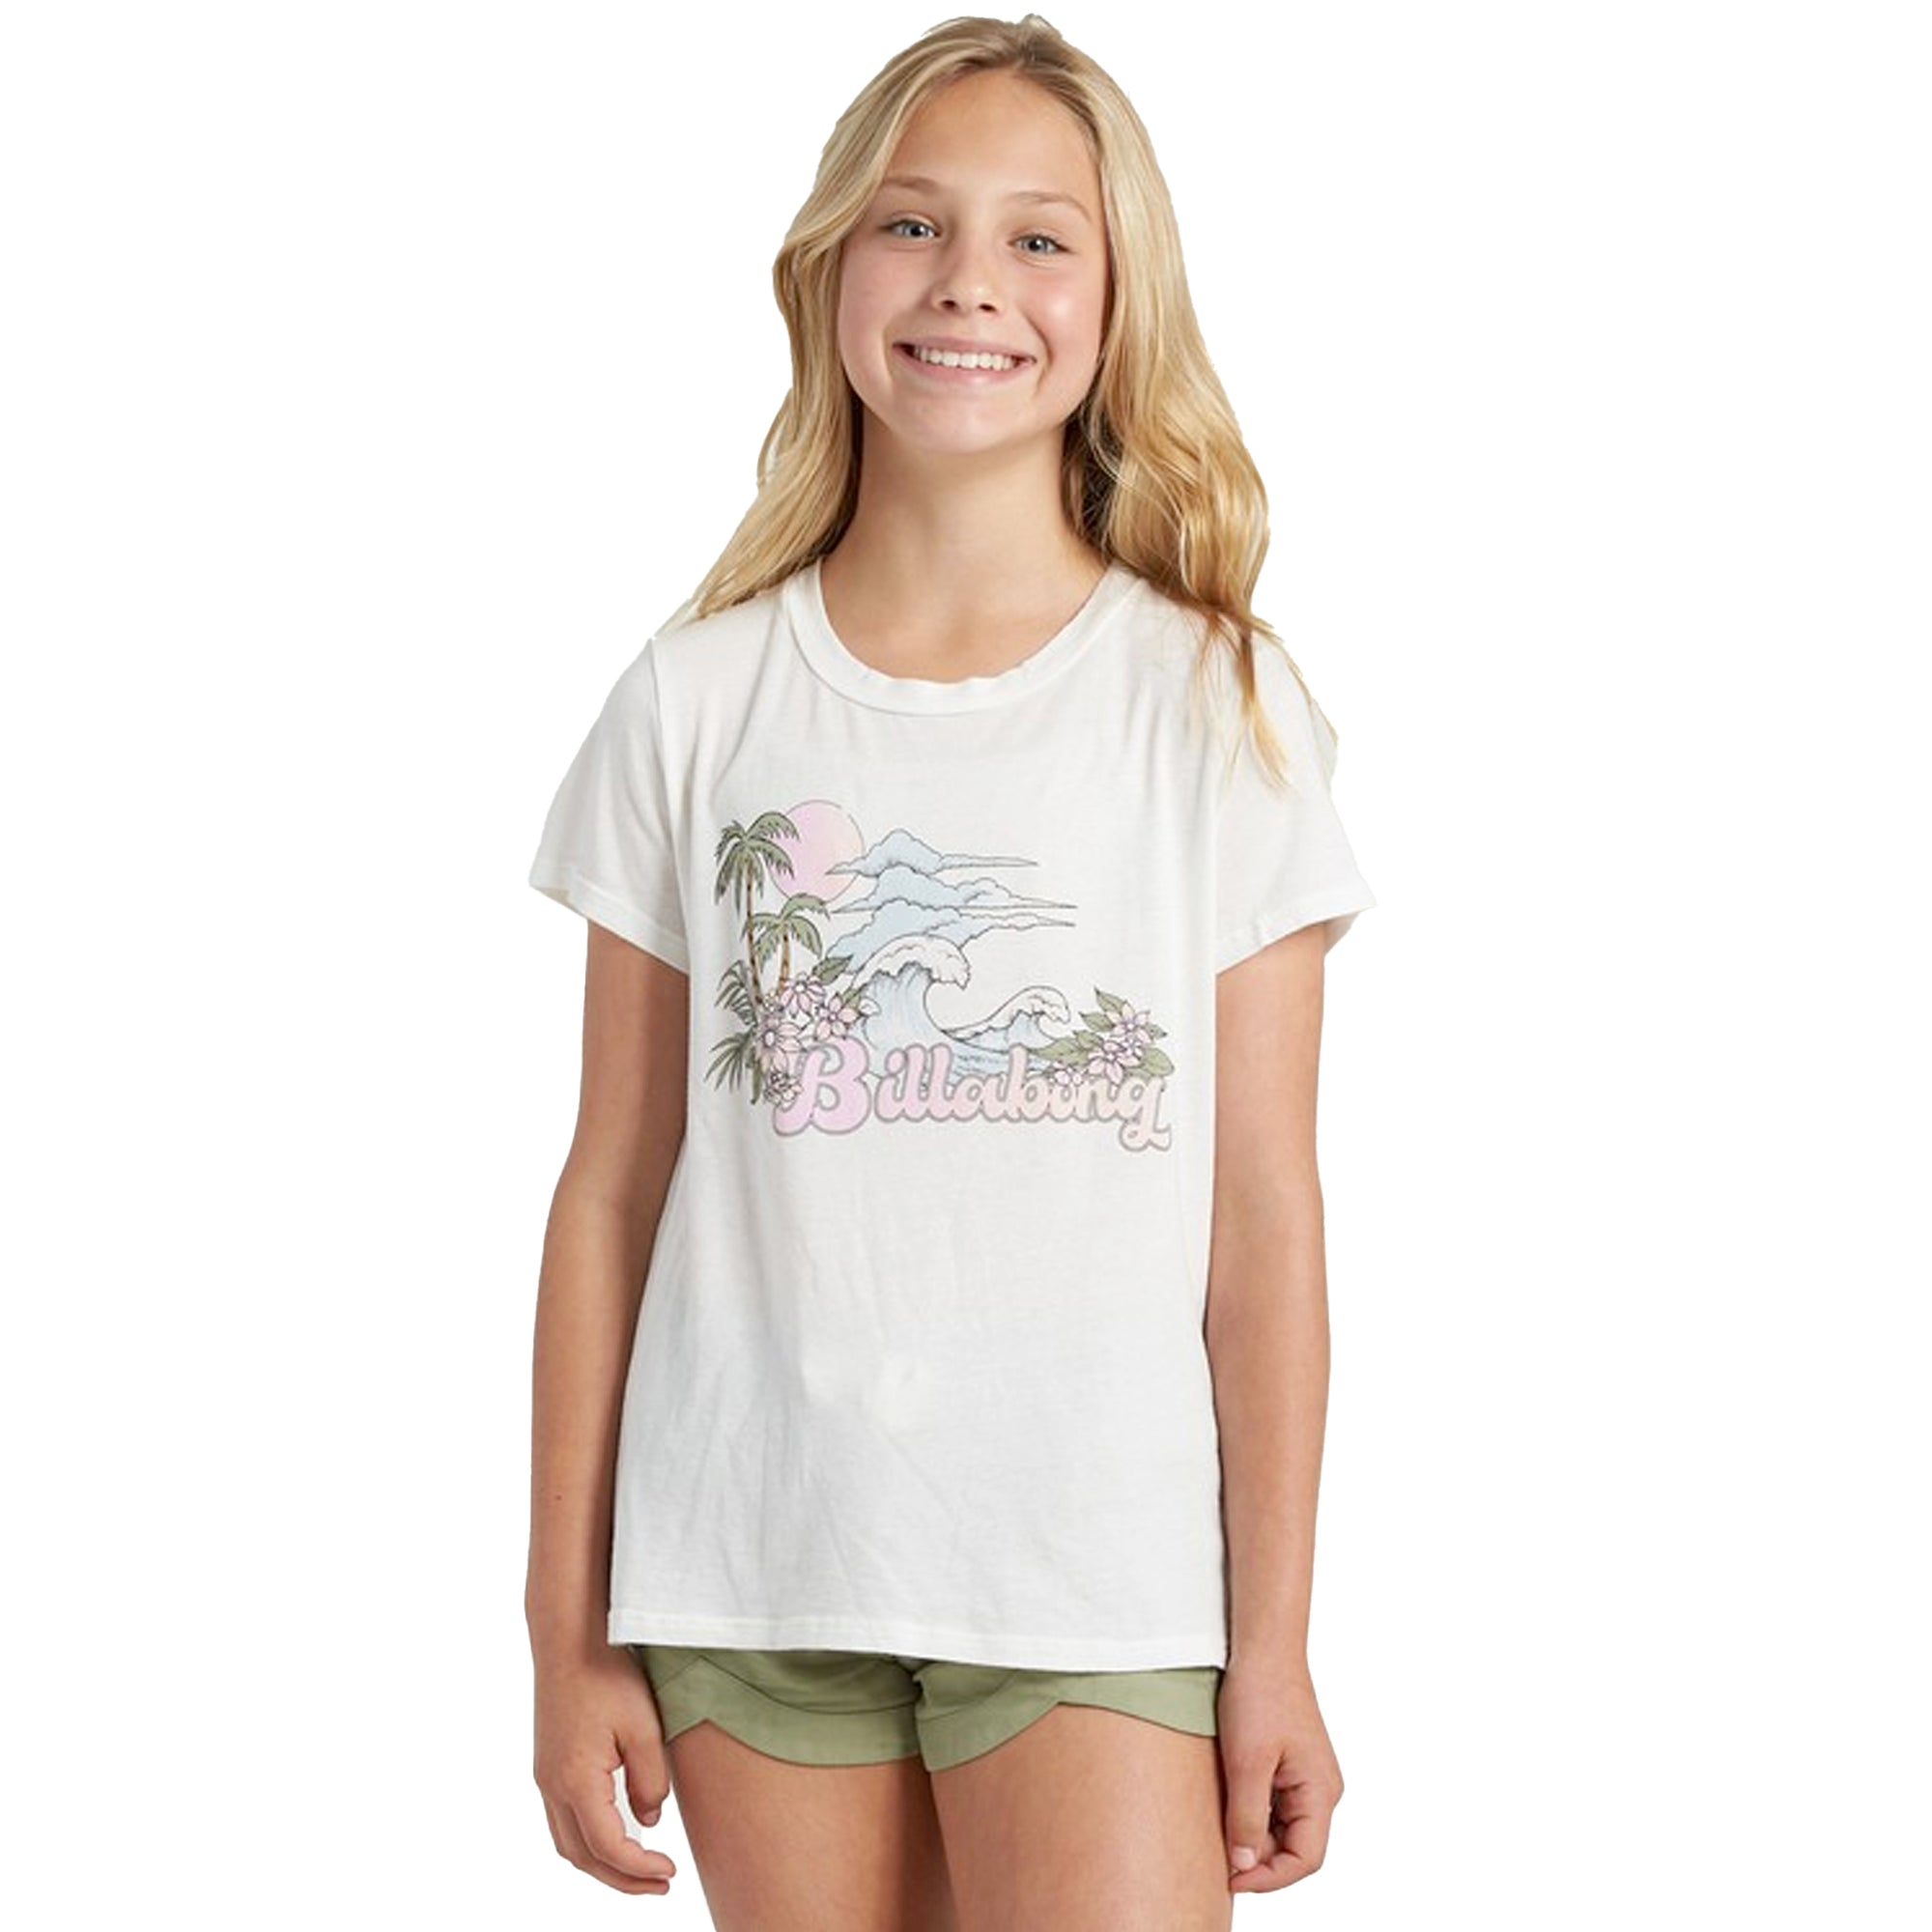 Billabong Vintage Postcard Youth Girl's S/S T-Shirt